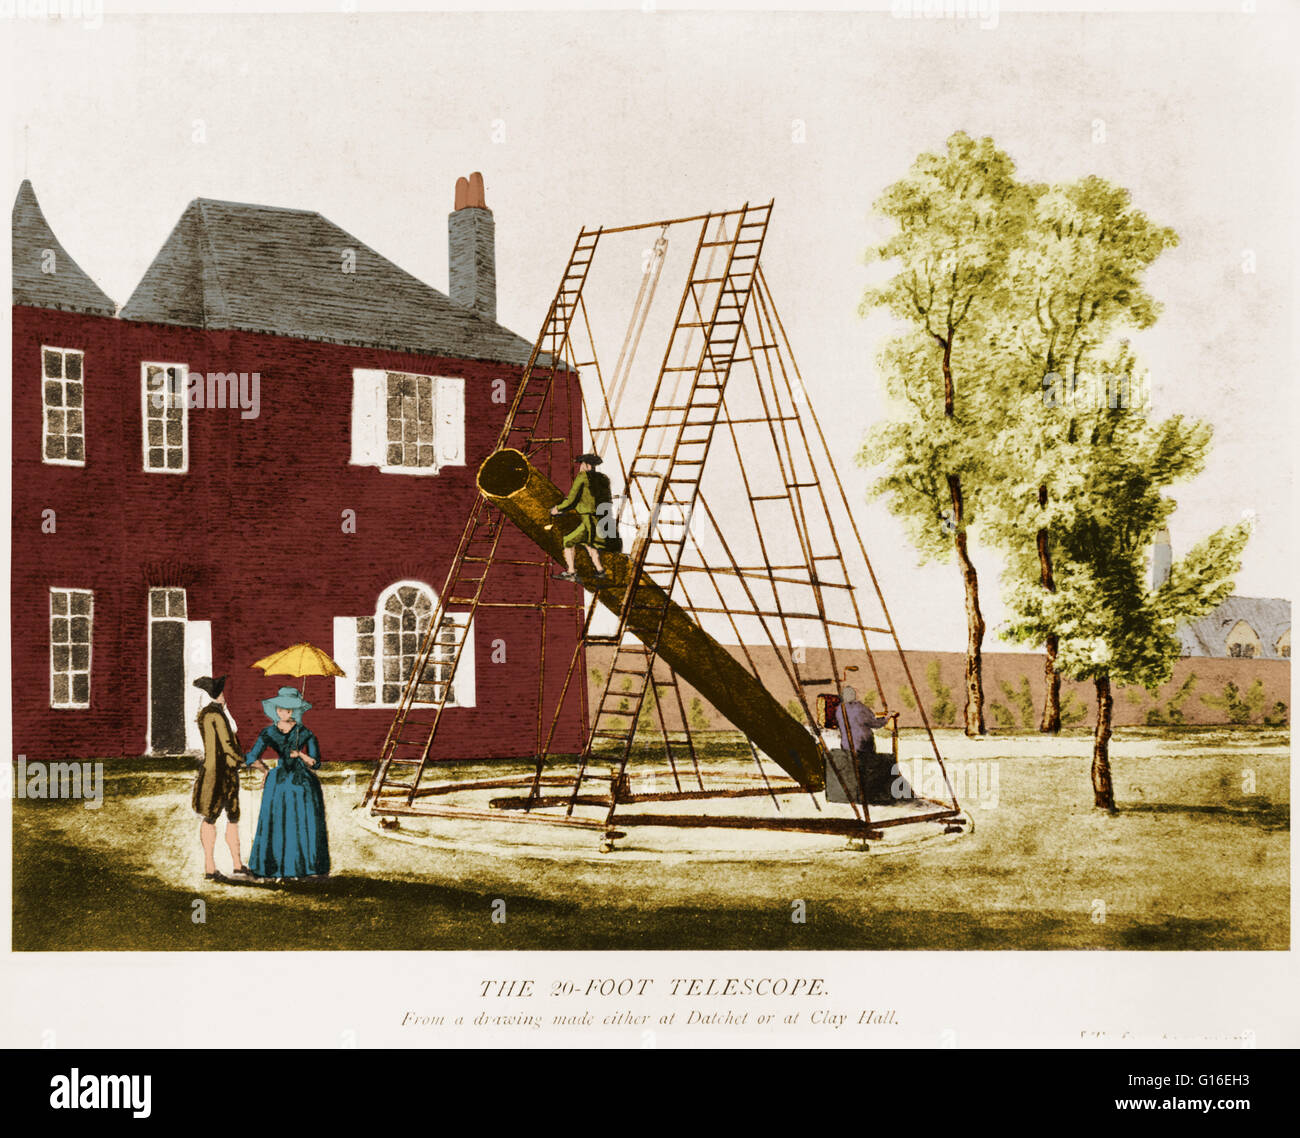 Illustration of the 20-foot reflector telescope designed by the British astronomer William Herschel (1738-1822). - Stock Image